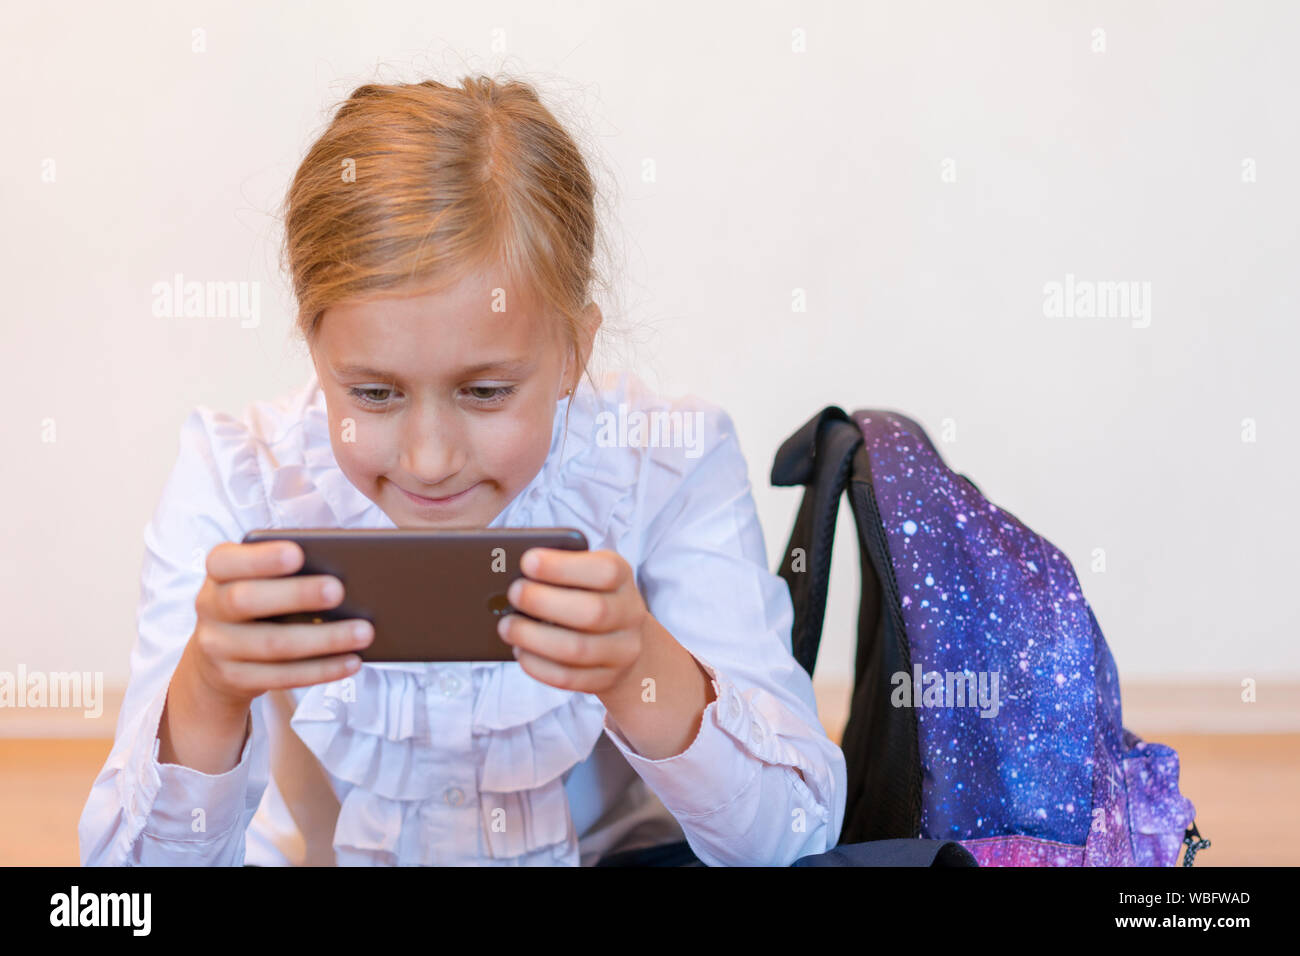 School girl plays on the smartphone. Kid play game, surfing online,  learning...etc. Mockup. vertical photo. Back to School Stock Photo - Alamy